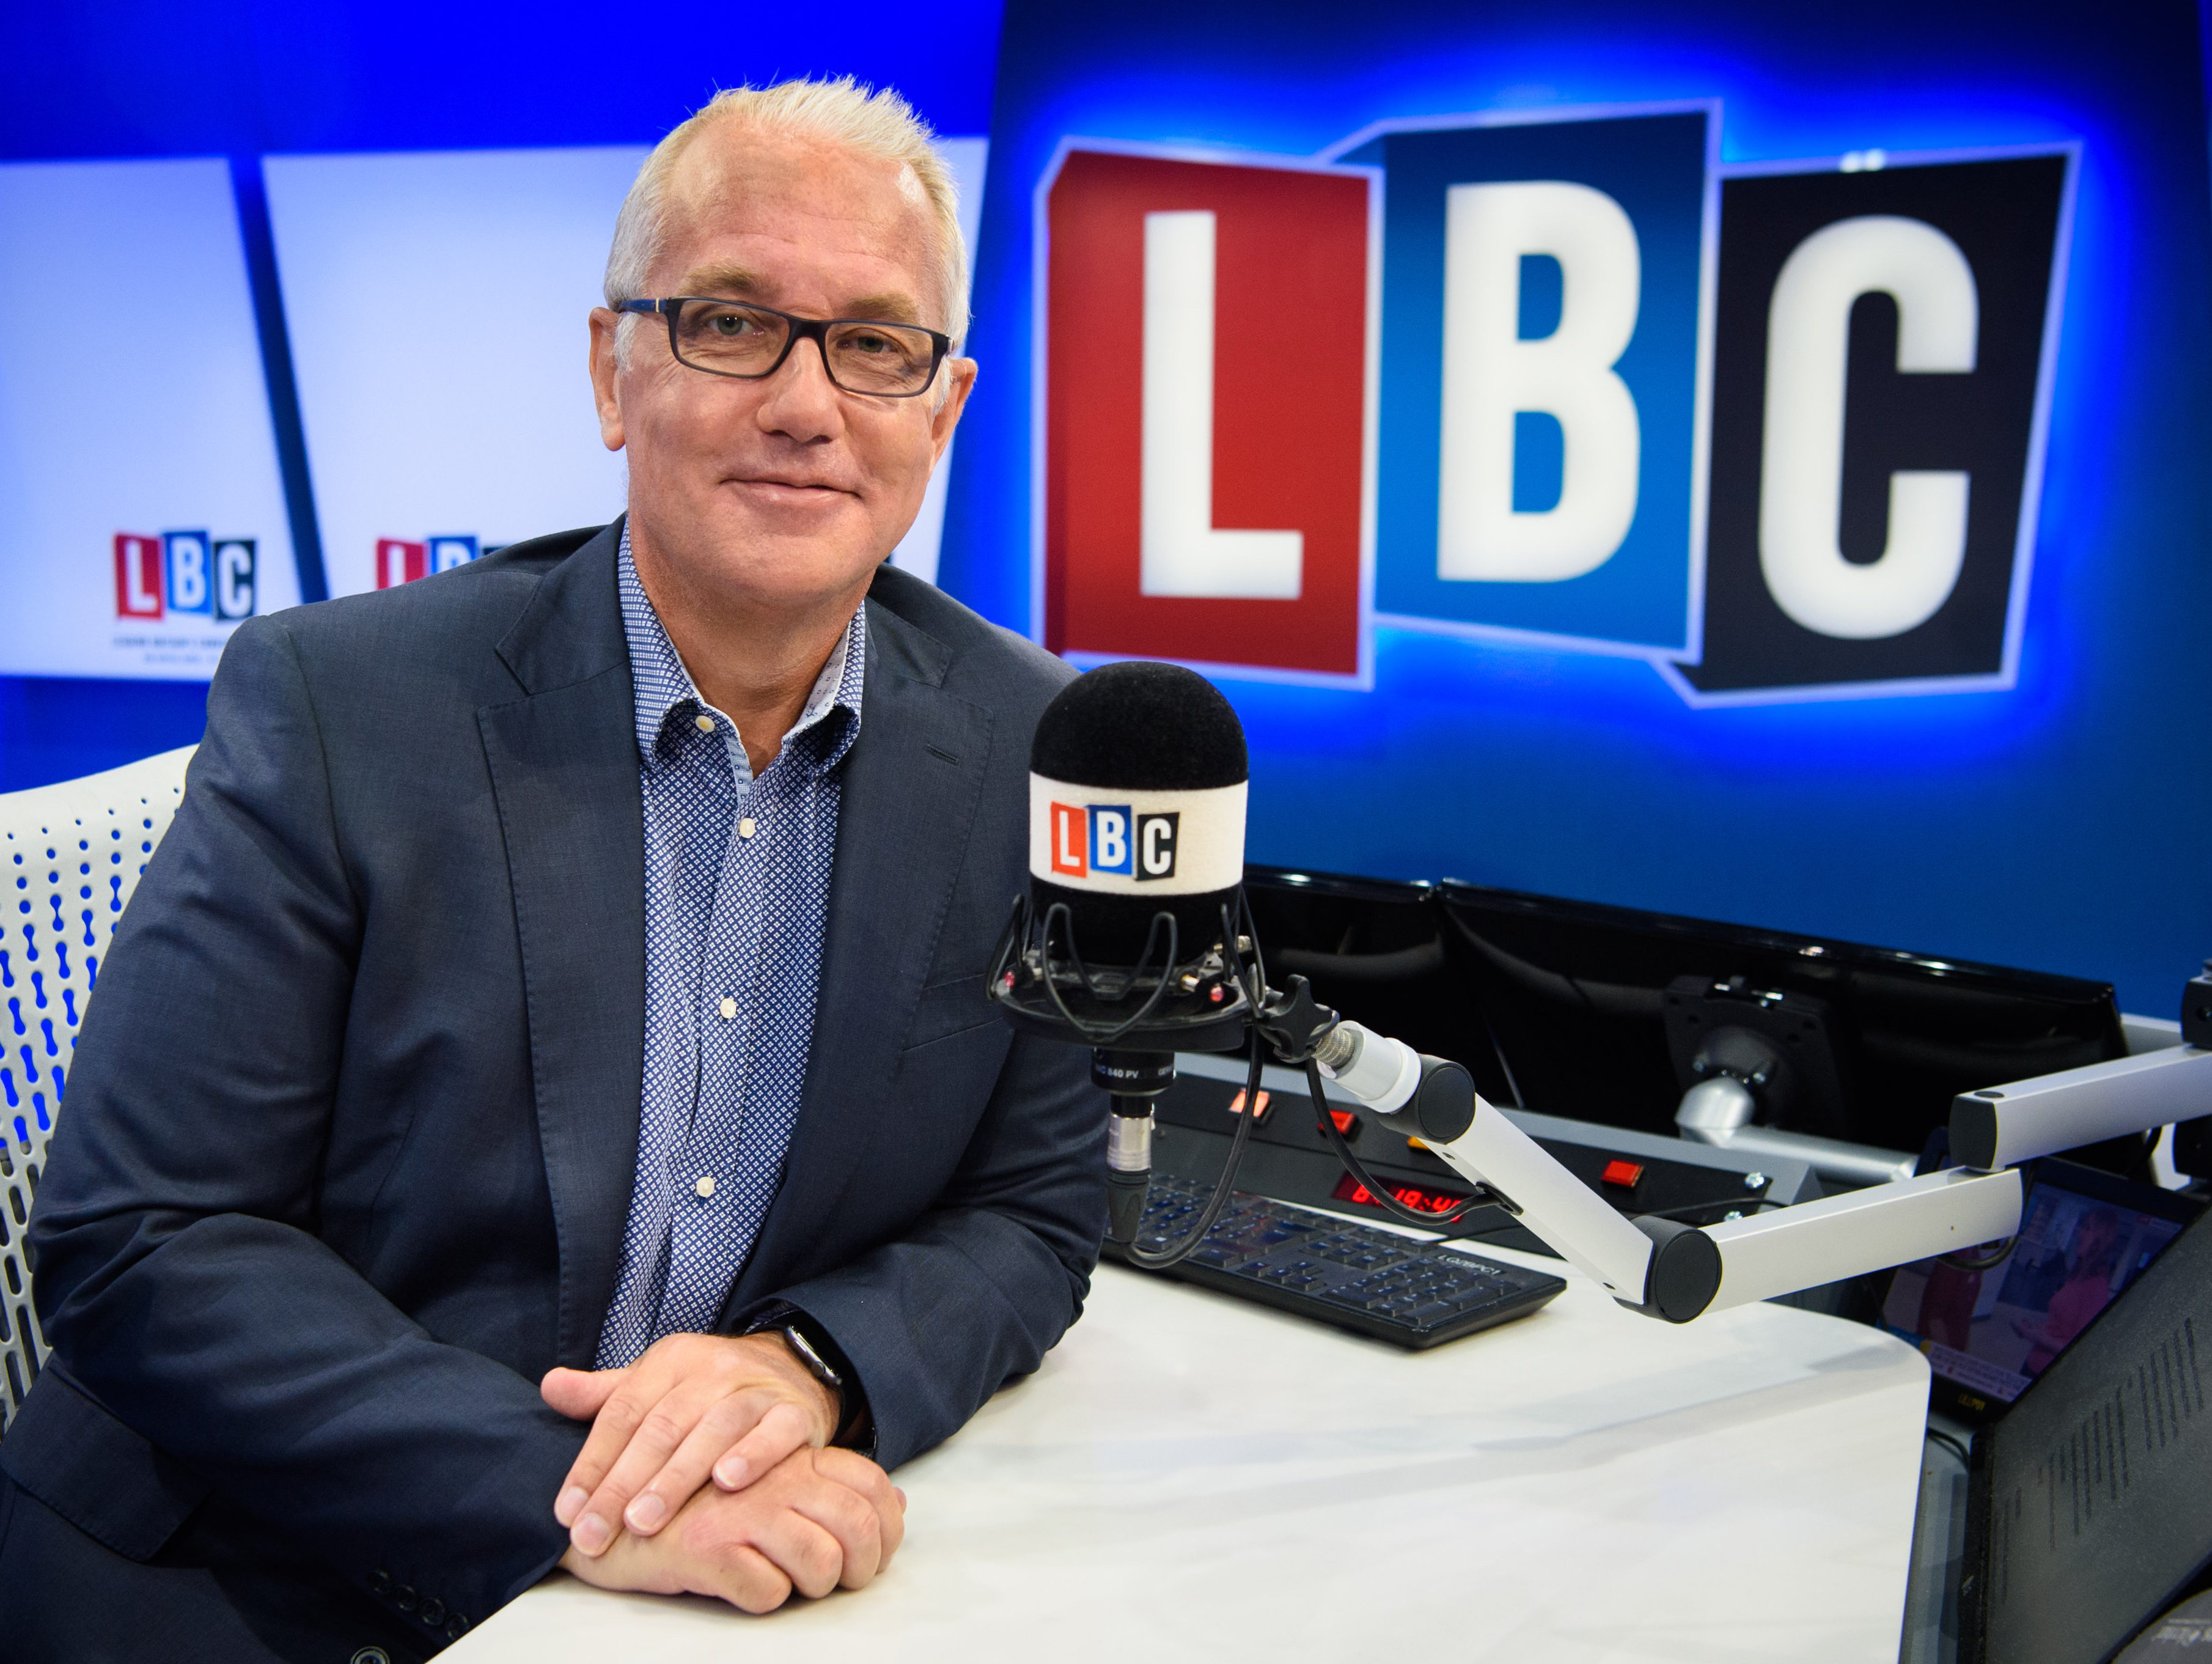 Eddie Mair confirmed for LBC from September